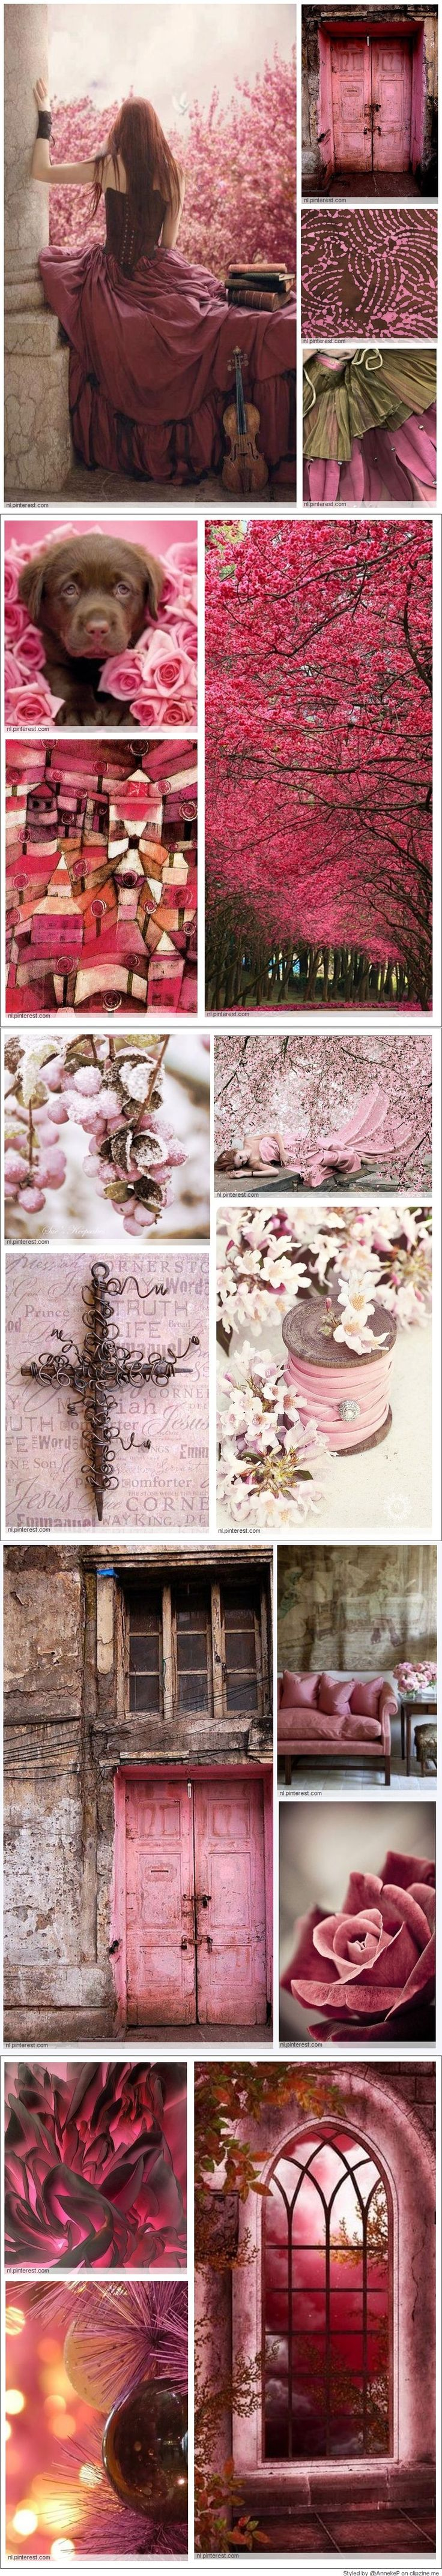 29 best Brown and Pink Aesthetic images on Pinterest | Pink brown ...